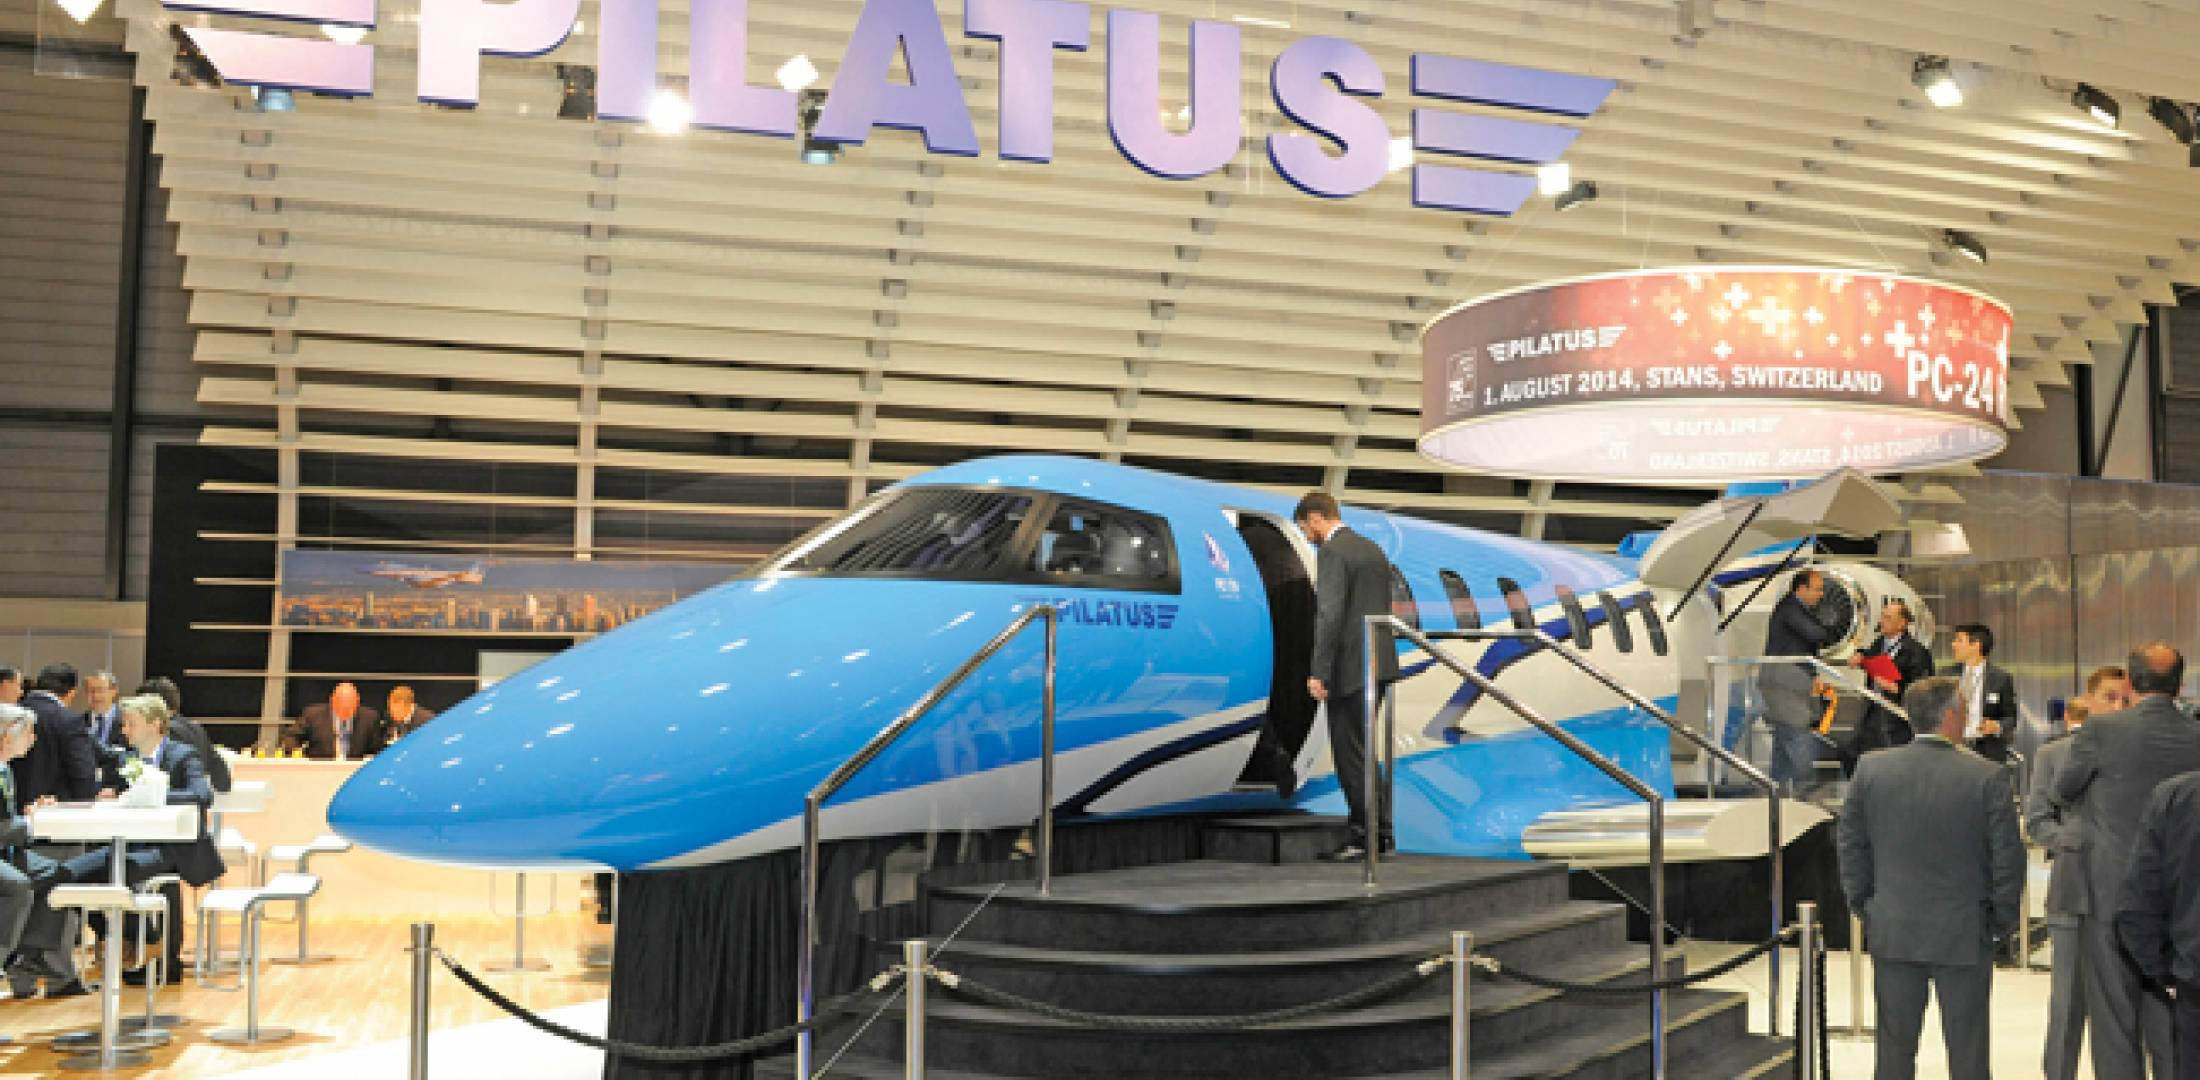 Pilatus has already sold two full years of production for its new PC-24 jet, which is due  to enter service in early 2017.